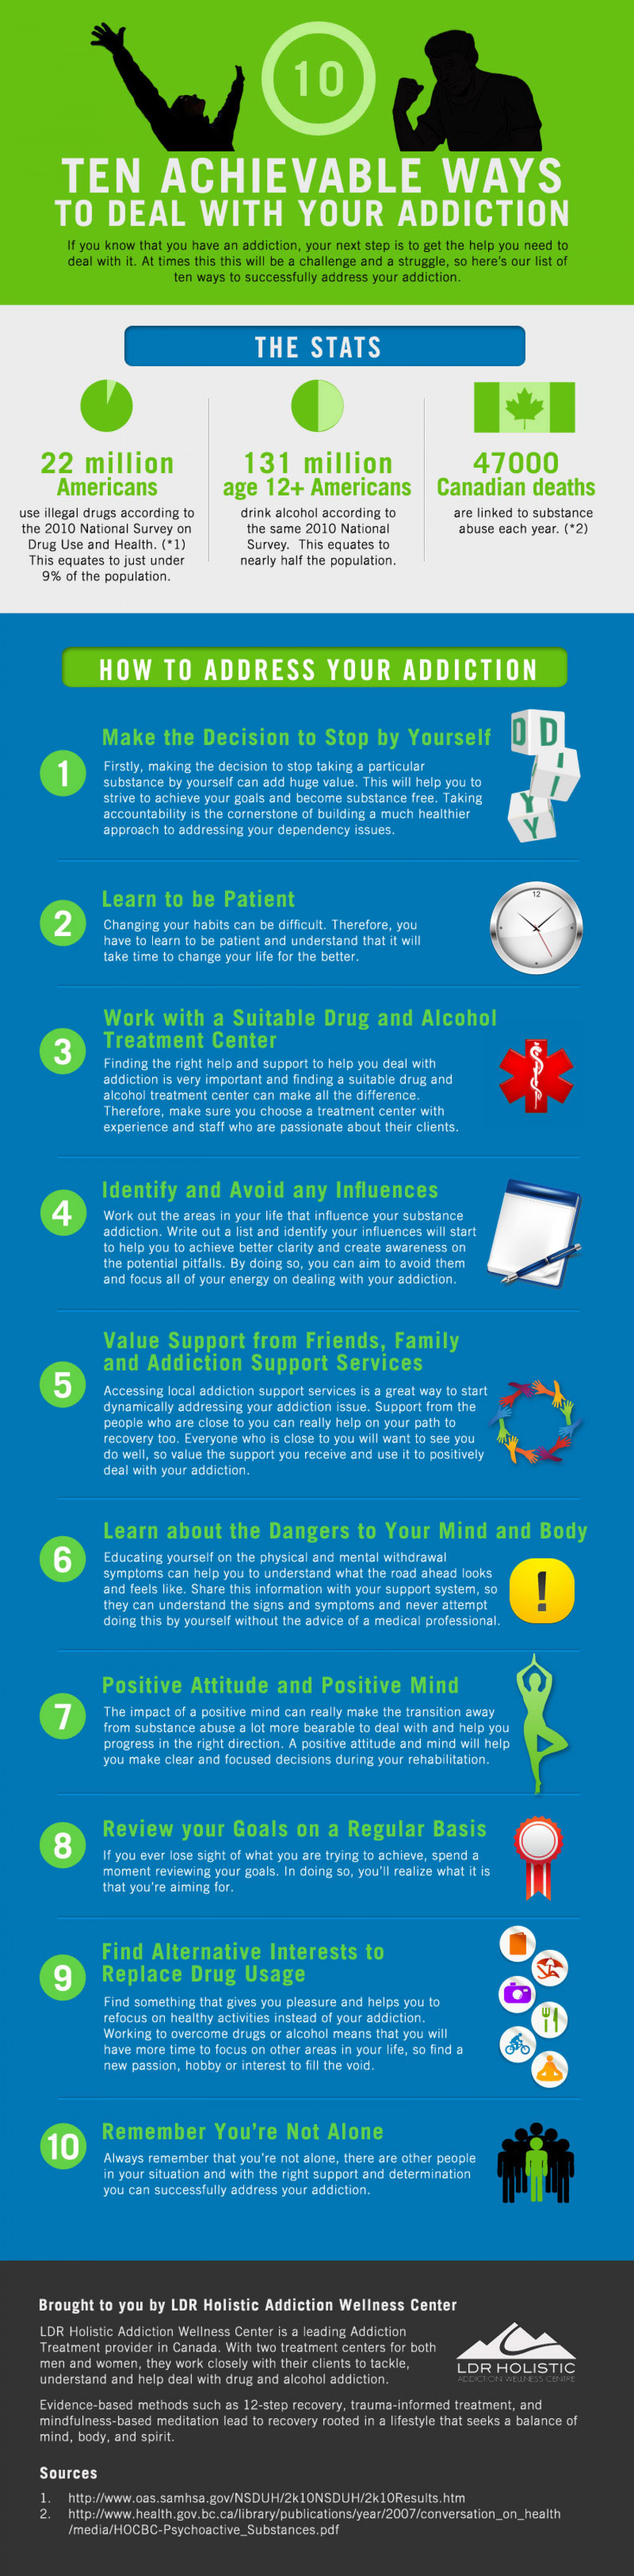 Ten Achievable Ways To Deal With Your Addiction Infographic